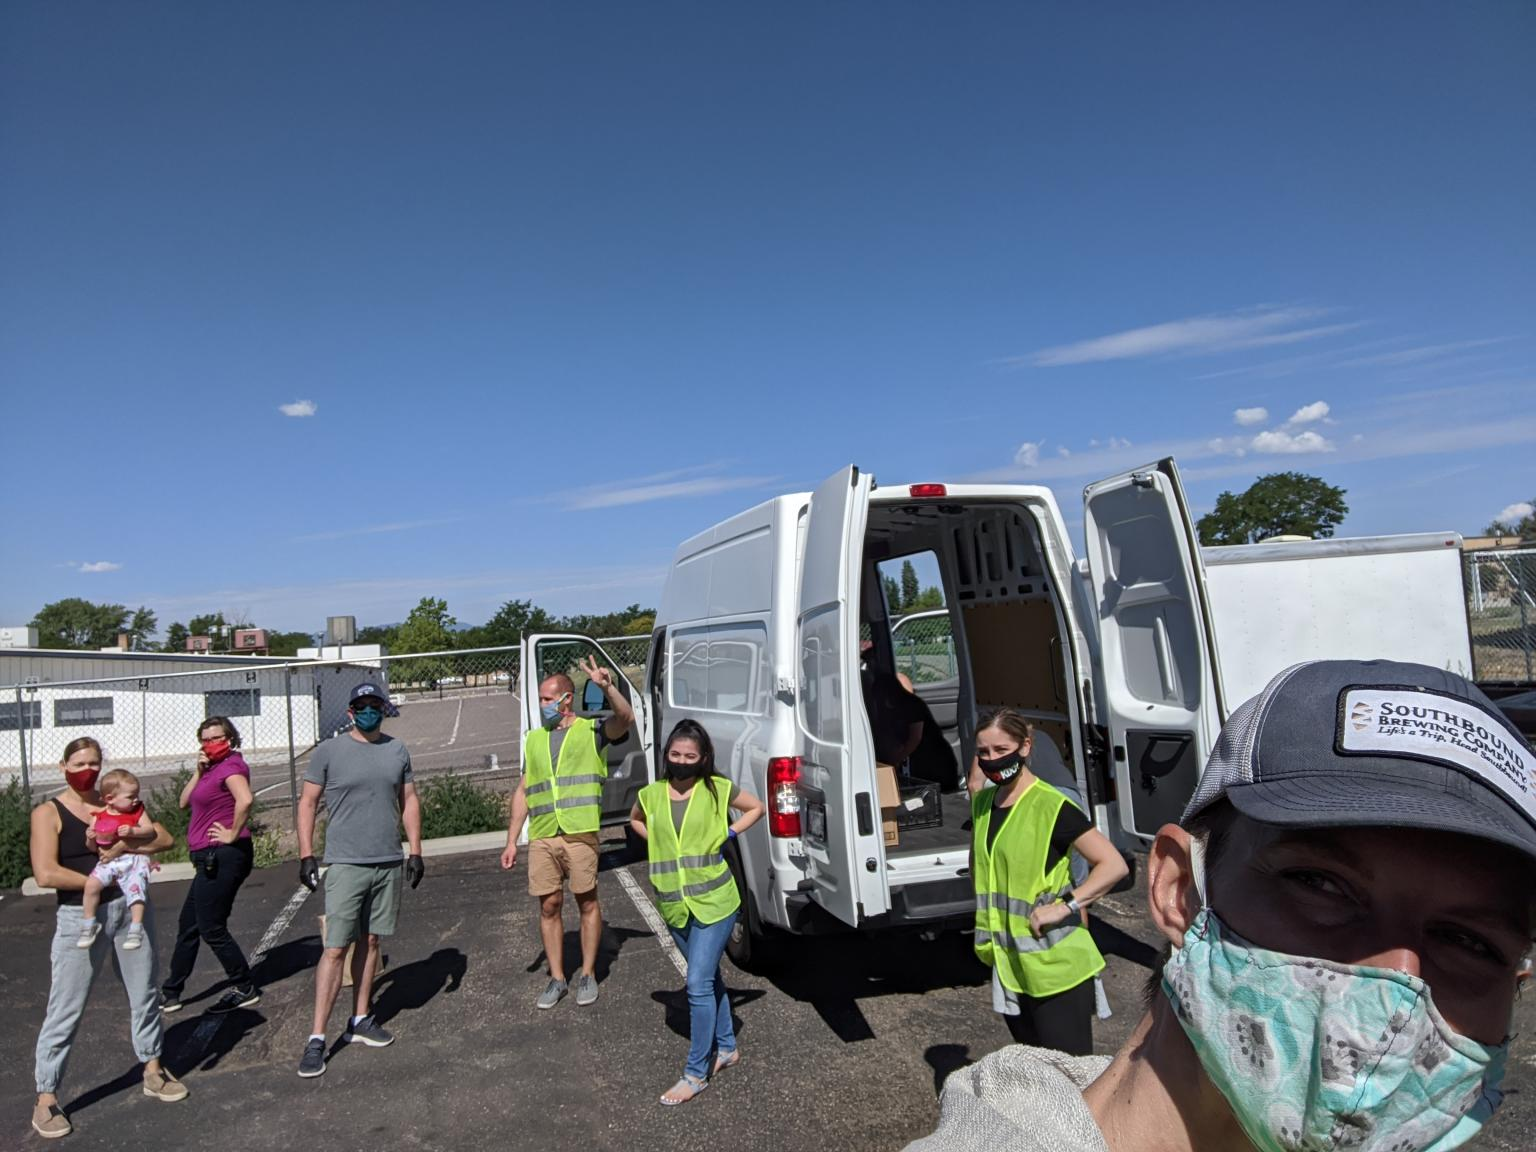 Good Business Colorado members on the first of two days of service with Growing Home in front of the Bondadosa truck on a beautiful Colorado Saturday morning - ready to lend a hand to help families in need!